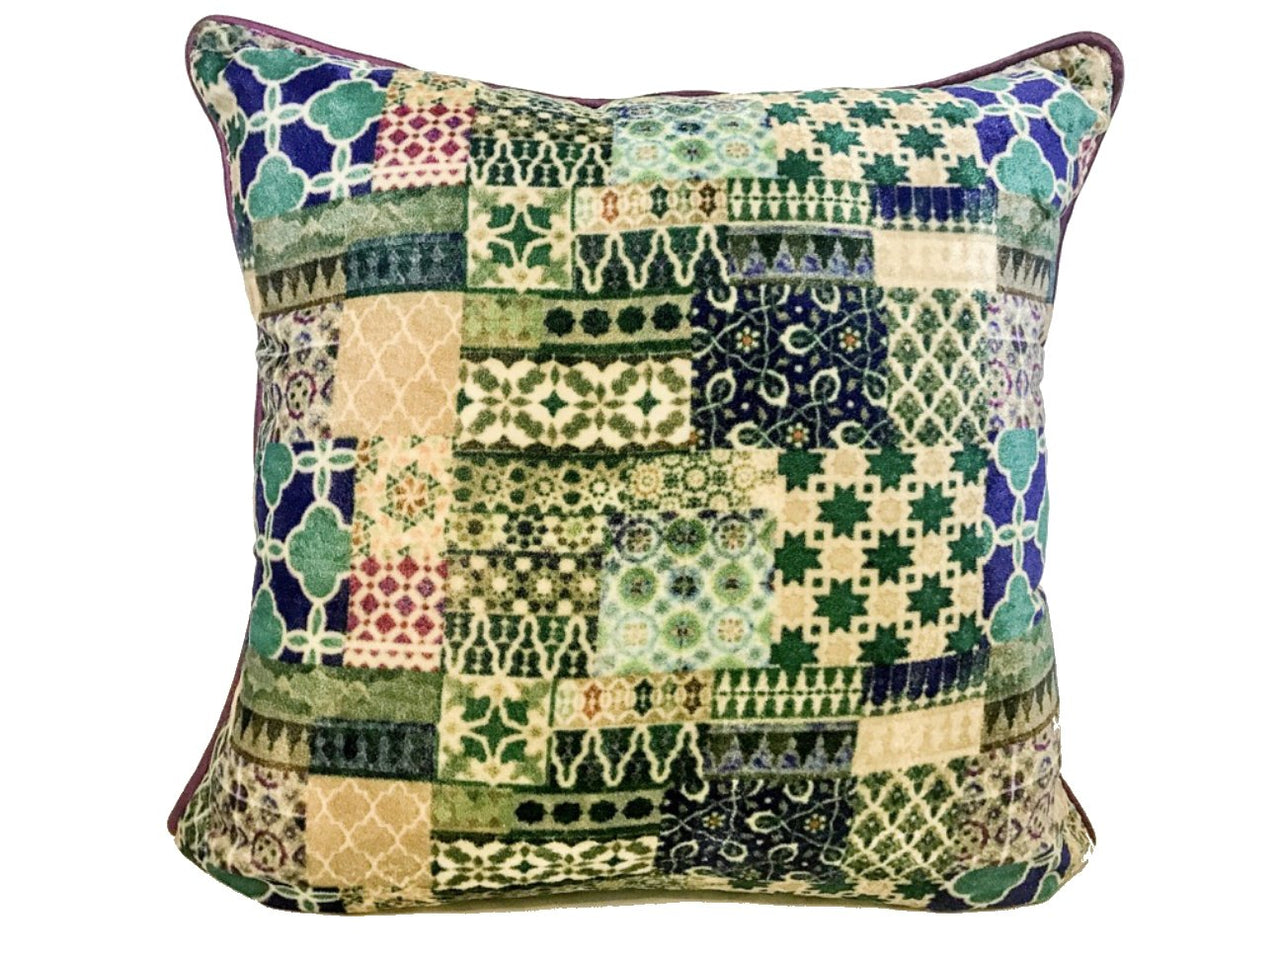 Velvet Cushion 20x20 Geometric design multicolour blue beige green - Maison Fusion